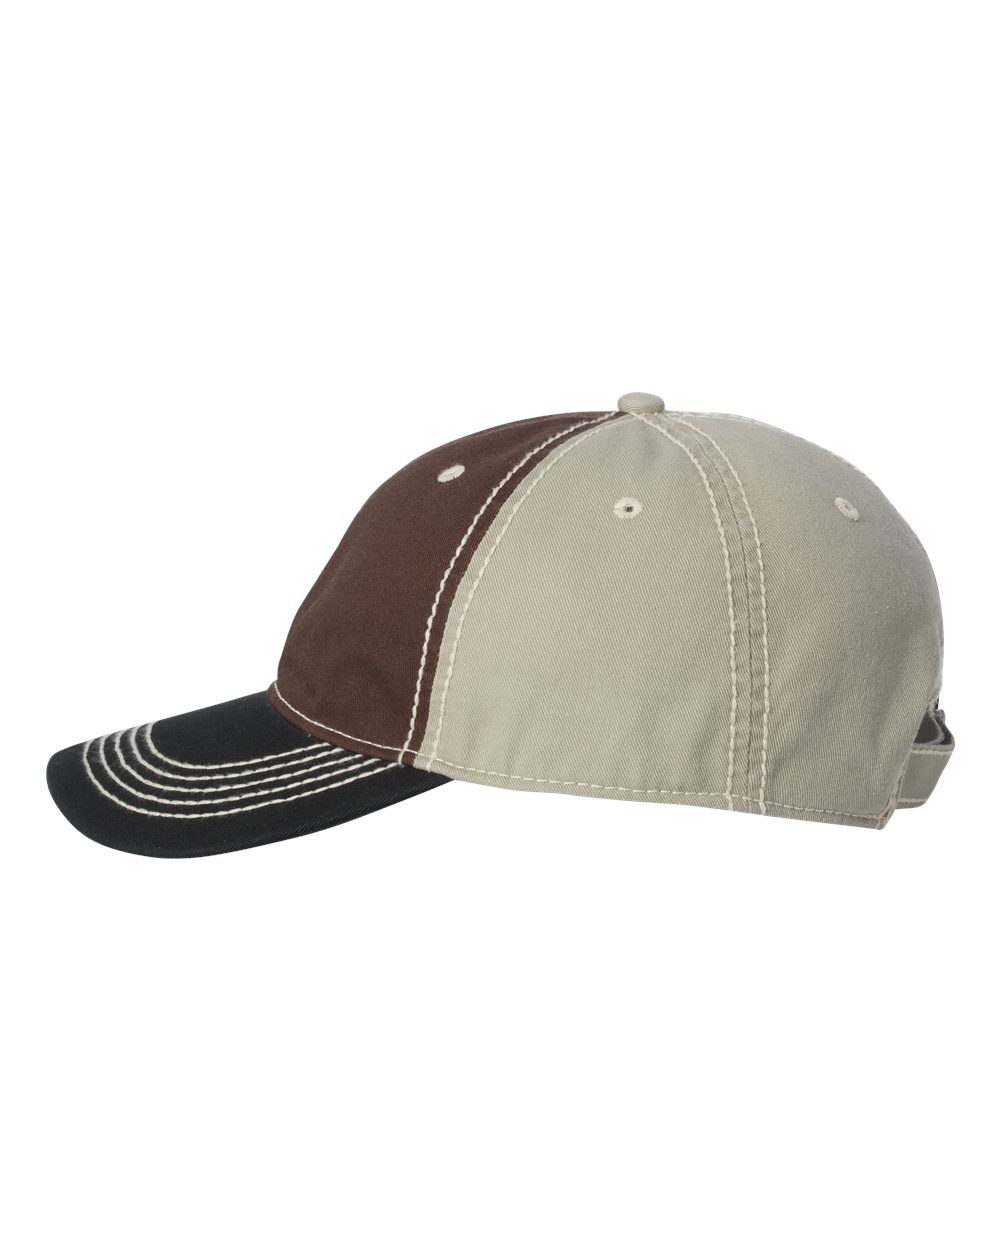 Outdoor Cap TPS300 - Washed Chino Cap with Contrast ...